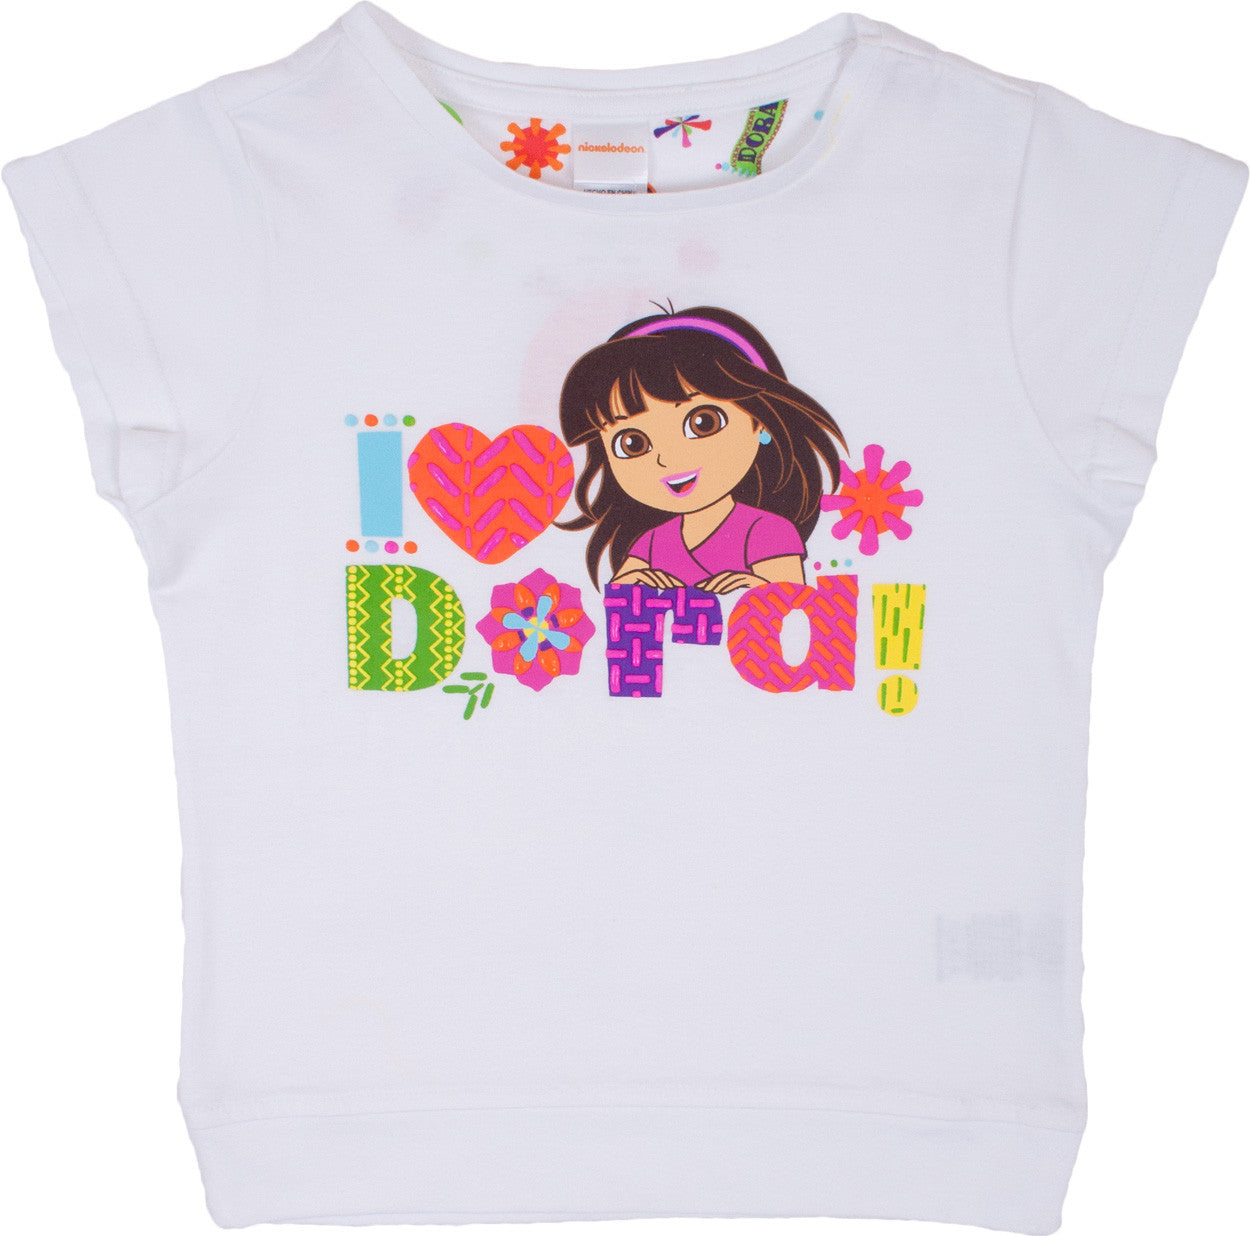 "Dora and Friends ""I Heart Dora"" Tee - Girls - nickelodeonstore.co.uk"